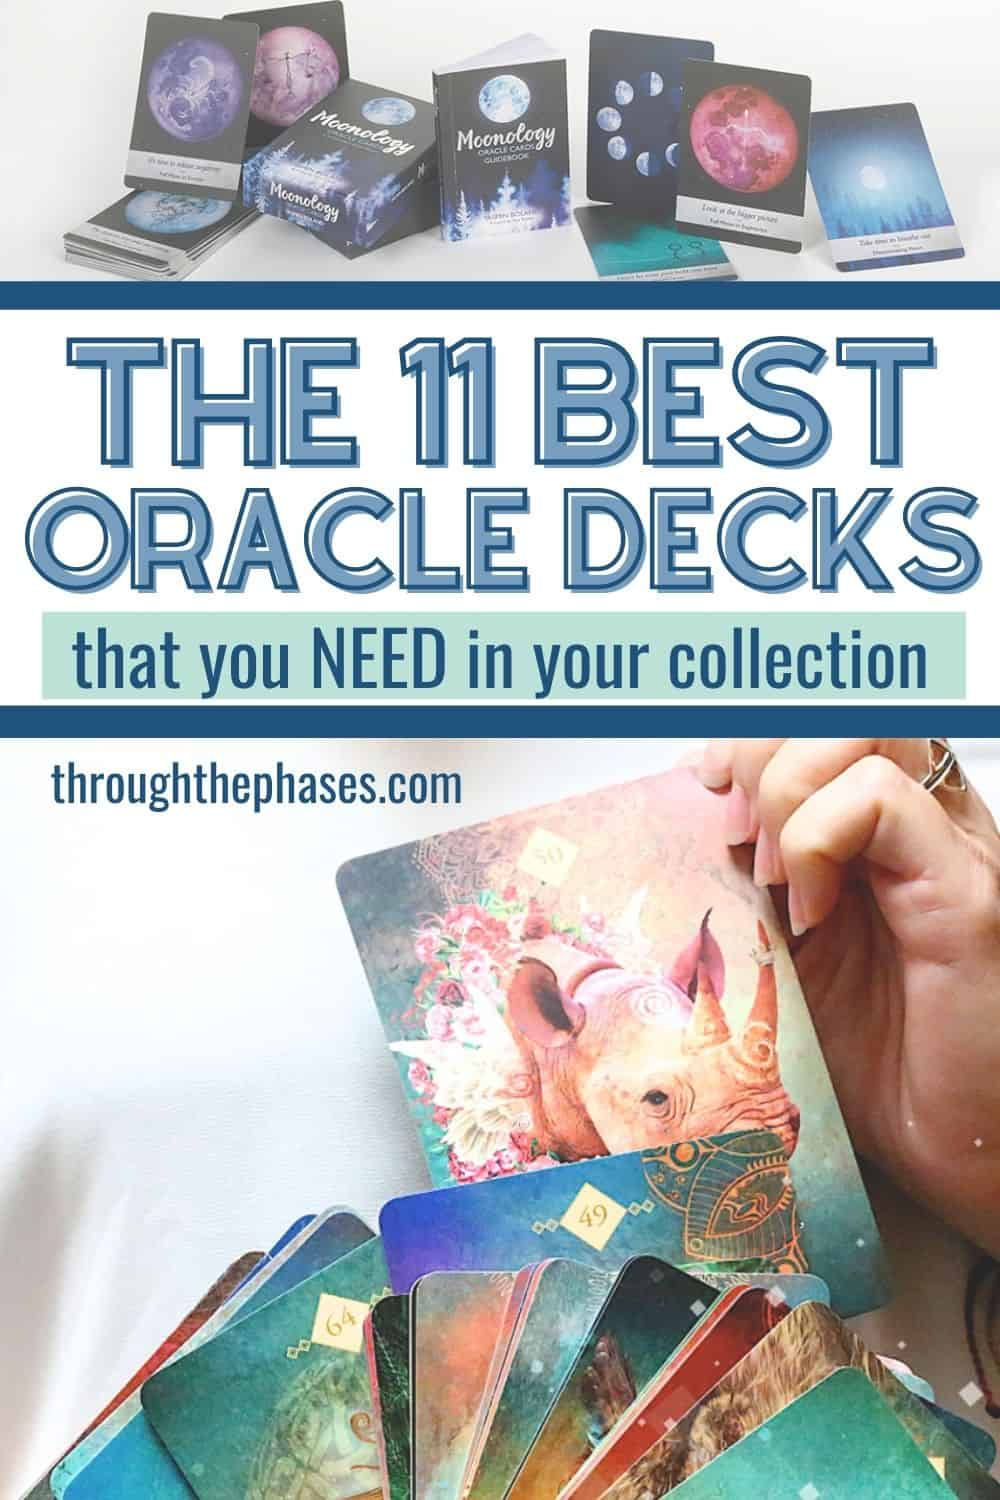 11 best oracle decks that you need in your collection